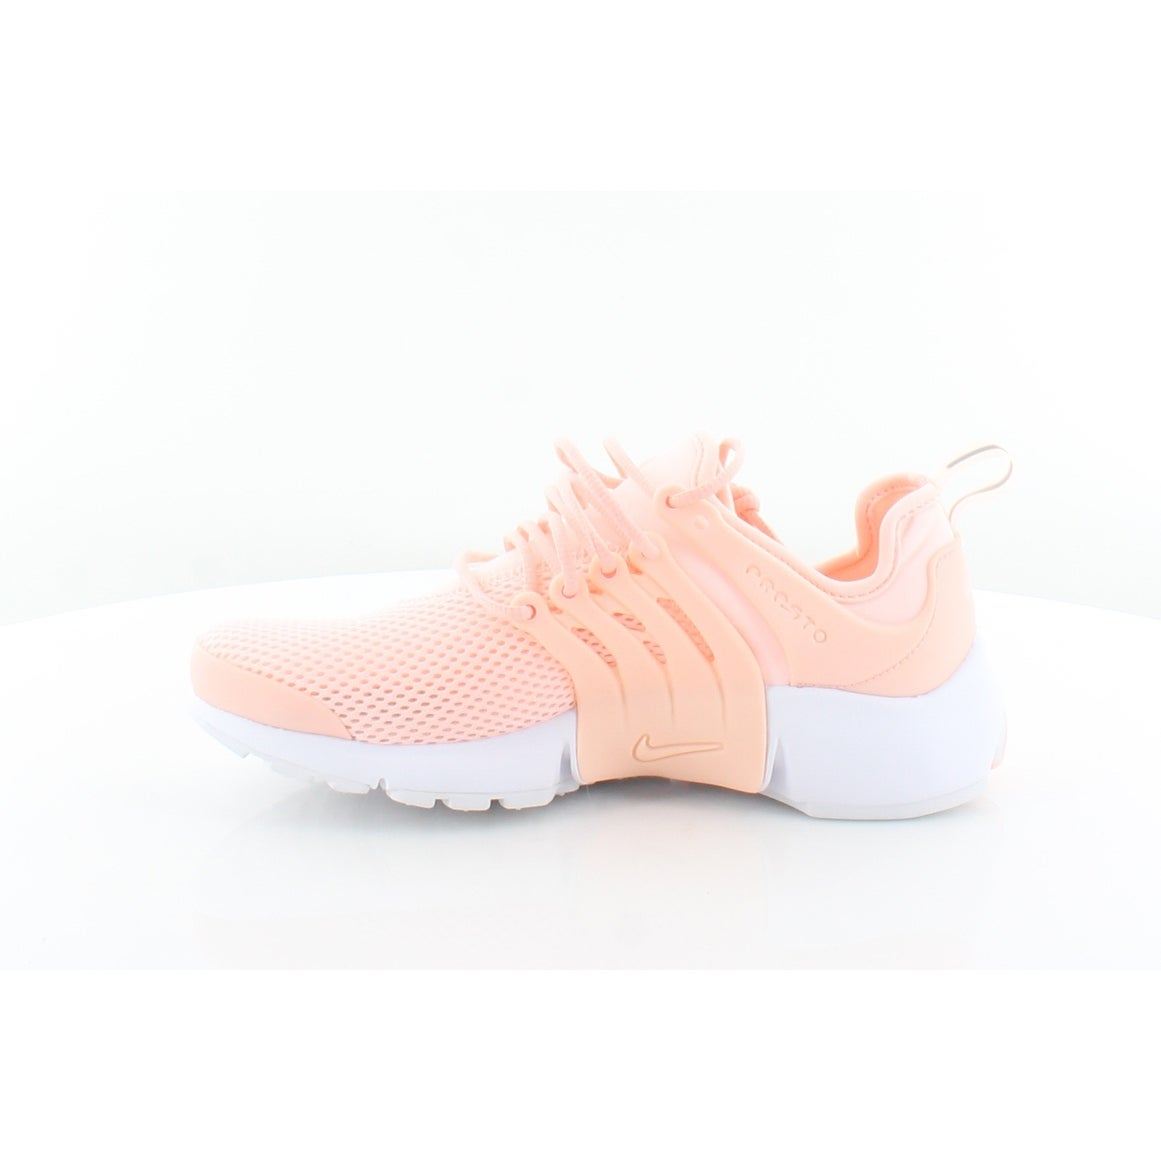 wholesale dealer 6c752 5f063 Shop Nike Air Presto Women s Athletic Sunset Tint White - Free Shipping  Today - Overstock - 25637152